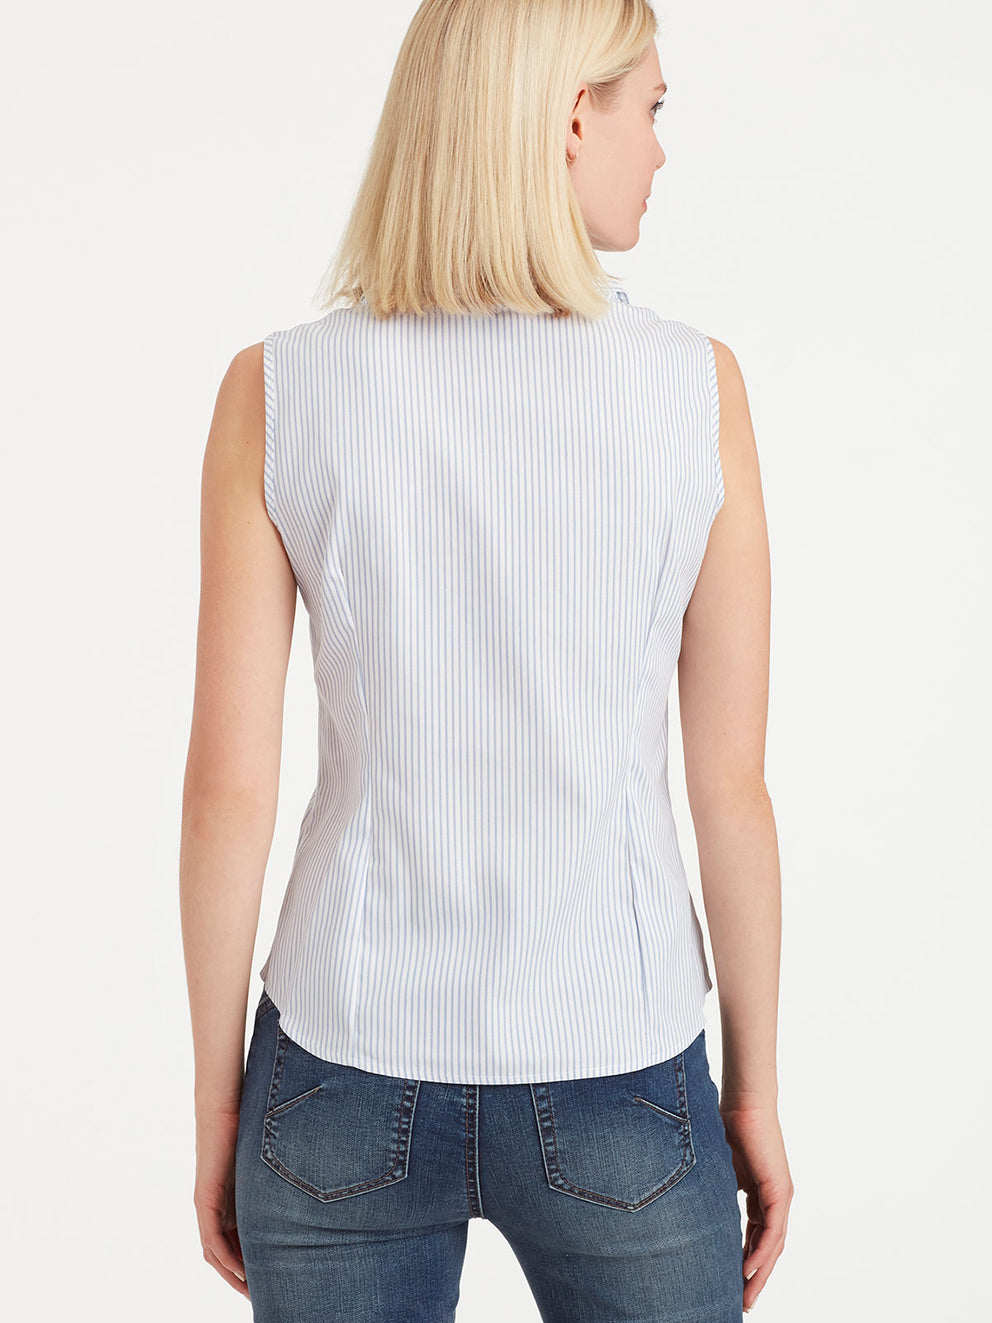 The Jones New York Striped Non-Iron Sleeveless Shirt in color Indigo Combo - Image Position 3